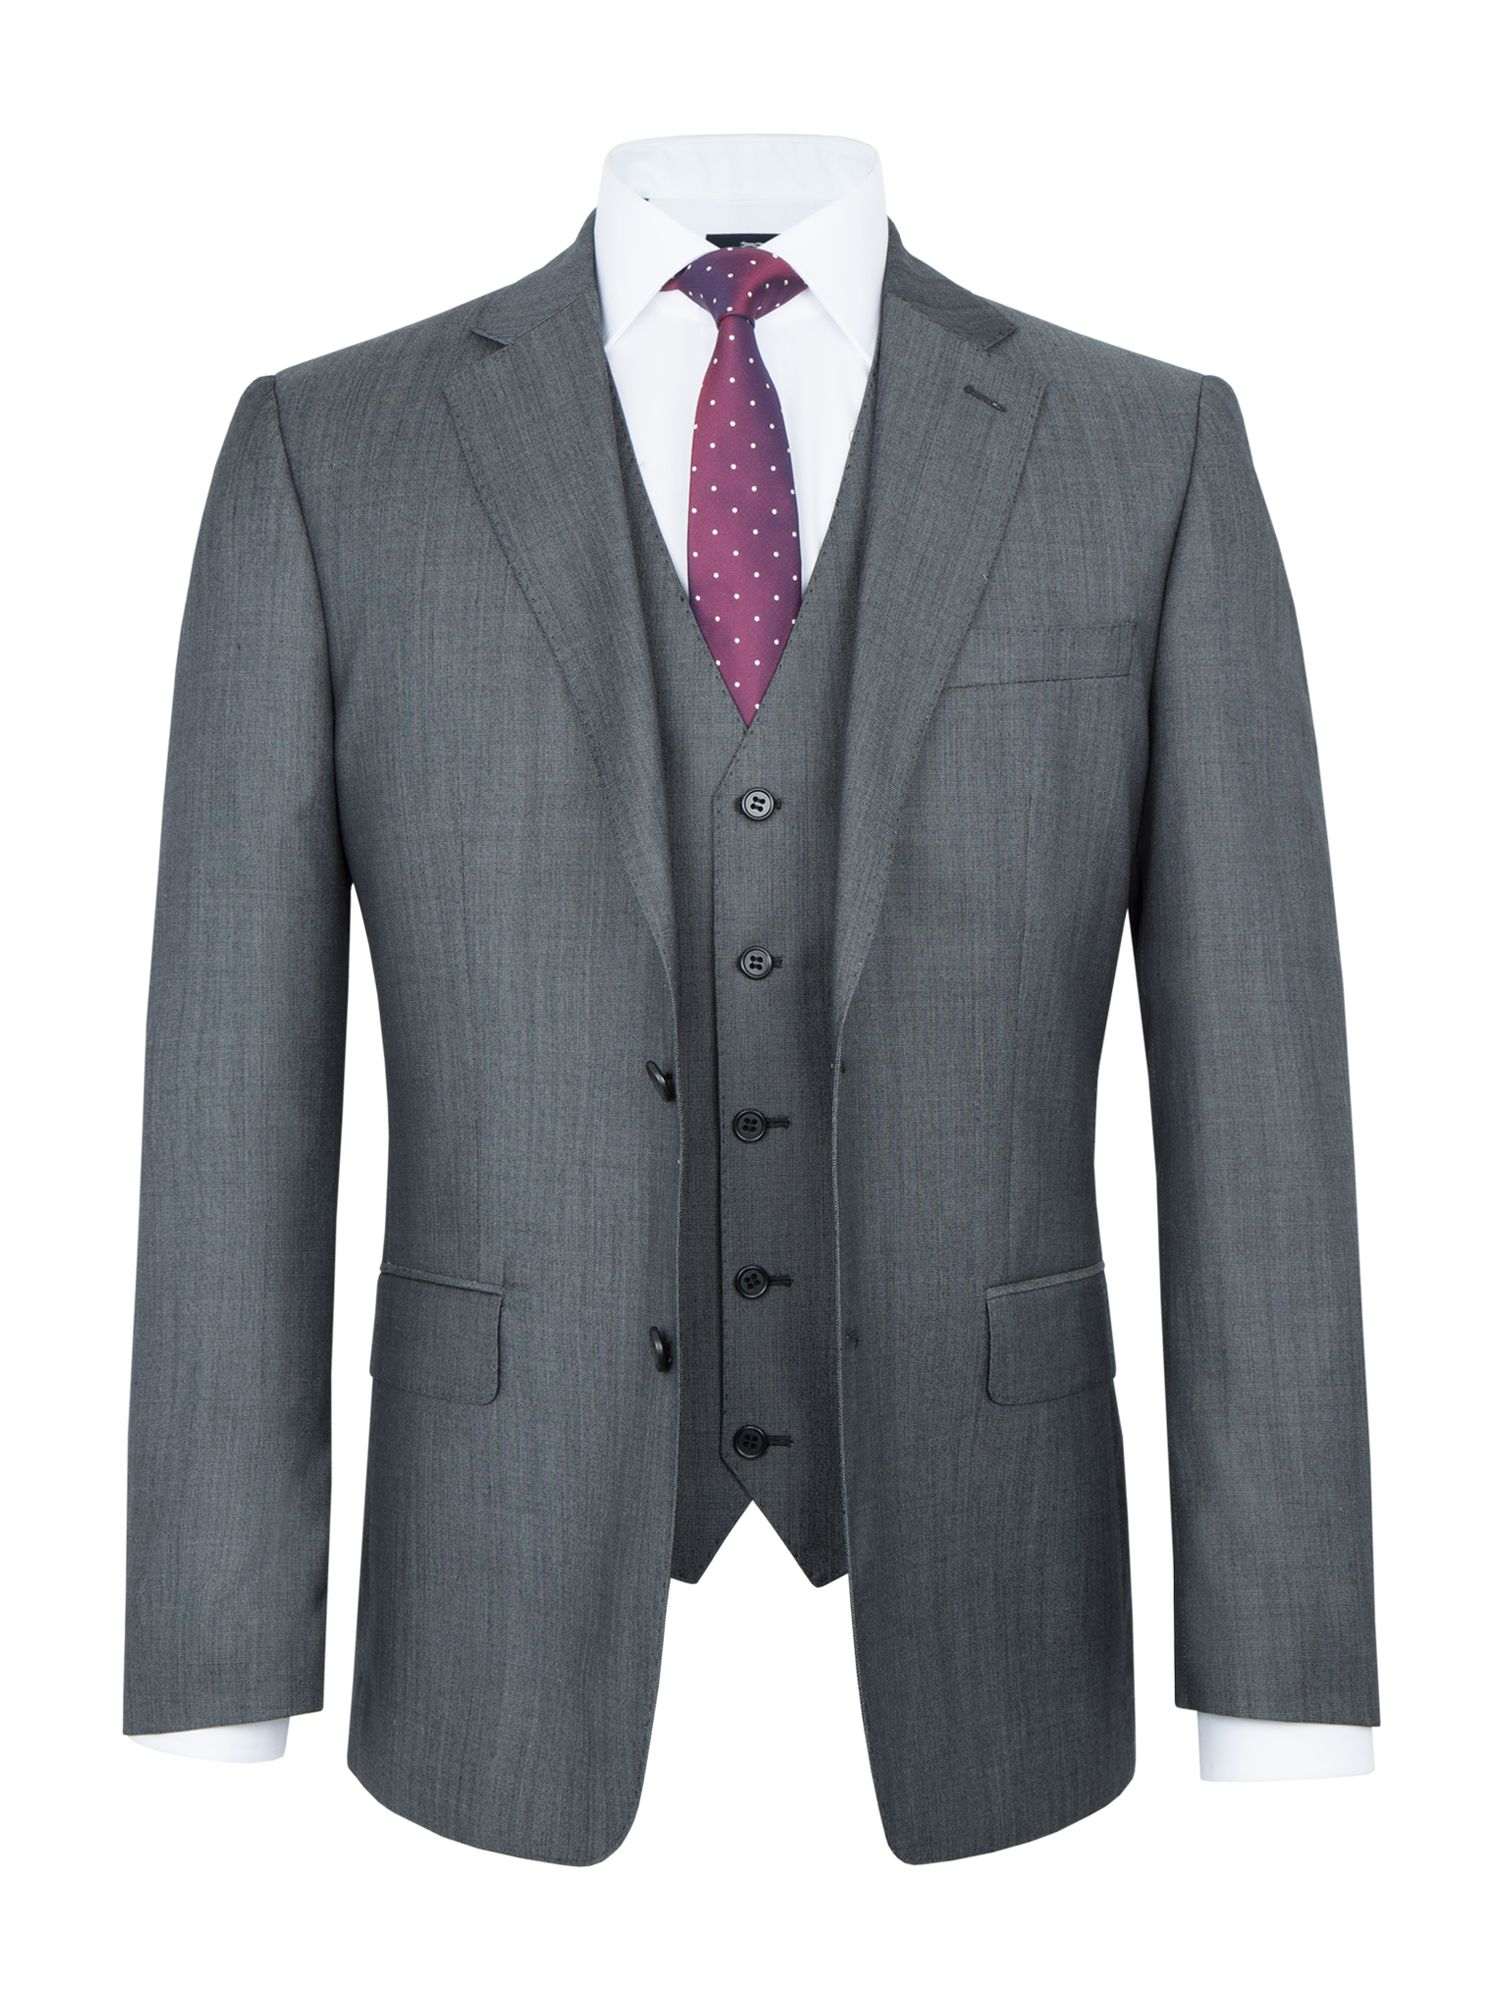 3 Piece Suits. Take your tailoring up a notch and add a waistcoat to create a 3-piece suit. 3-piece suits are not only a stylish upgrade from the classic suit, but also provide additional formality, perfect for special occasions.